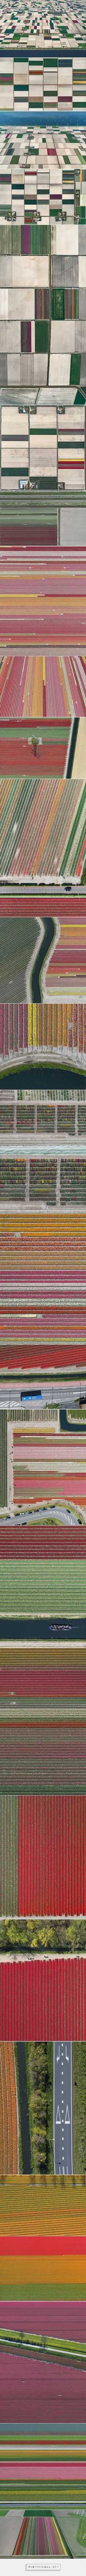 Tulip Fields on Behance - created via https://pinthemall.net